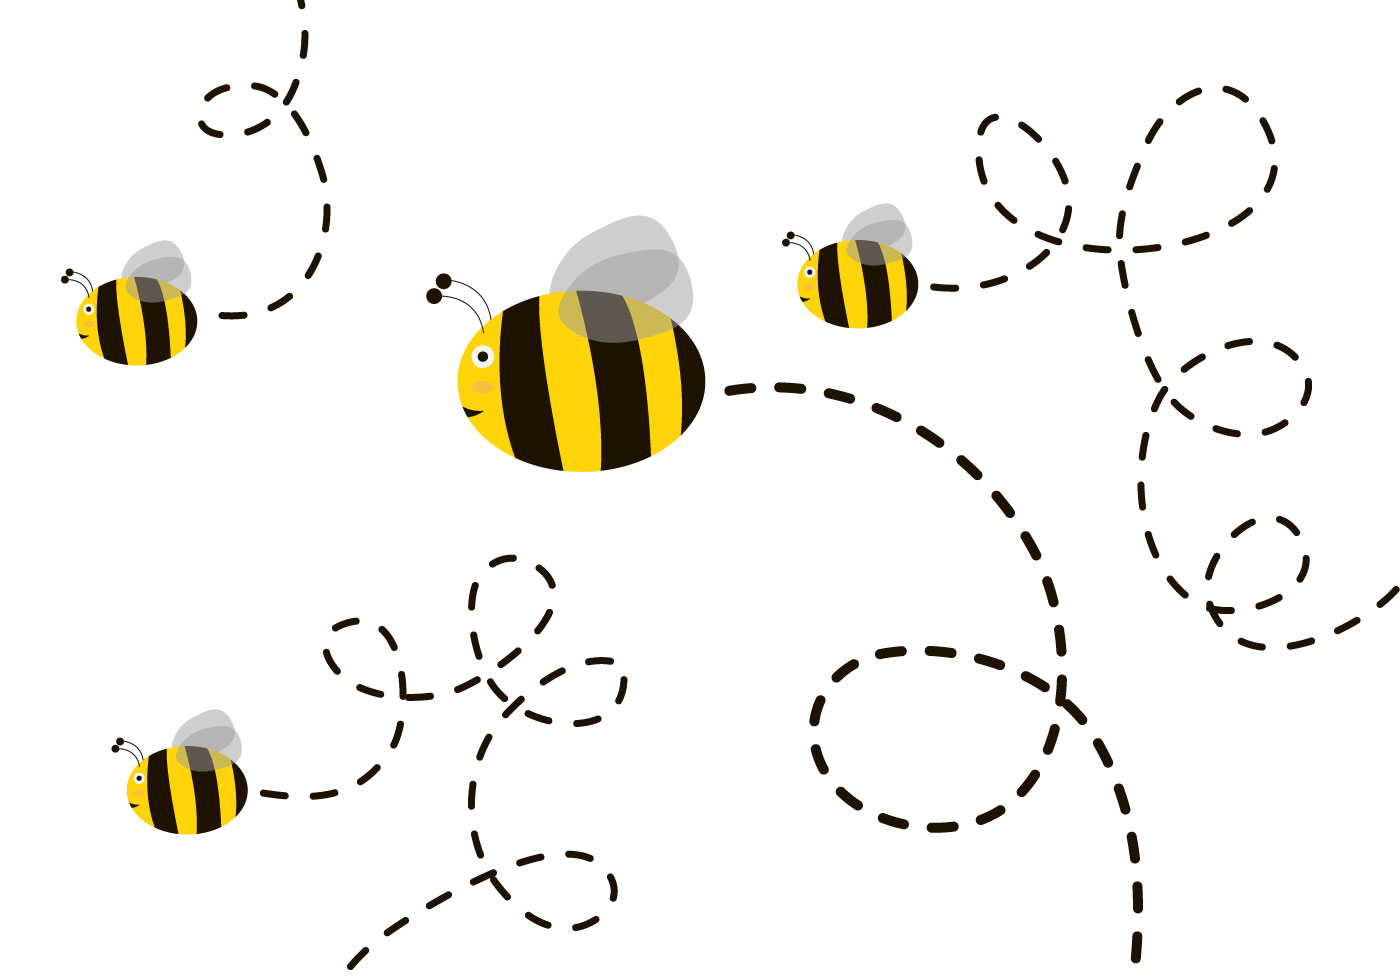 Black Bumble Bee >> Cute Bee Free Vector Art - (6347 Free Downloads)